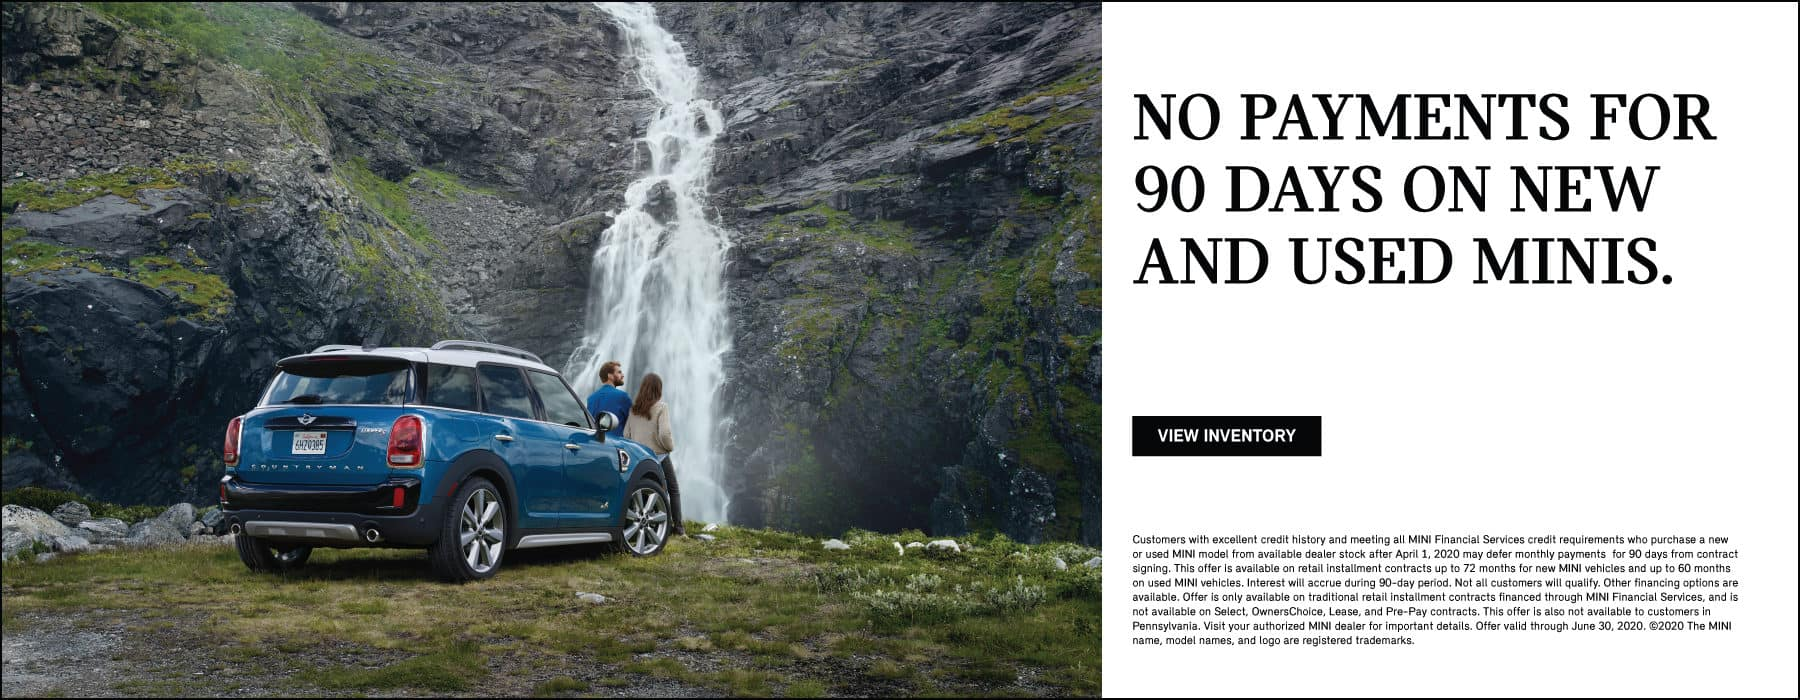 No payments for 90 days on new and used MINIs. Blue MINI Cooper S Countryman ALL4 parked in front of waterfall.